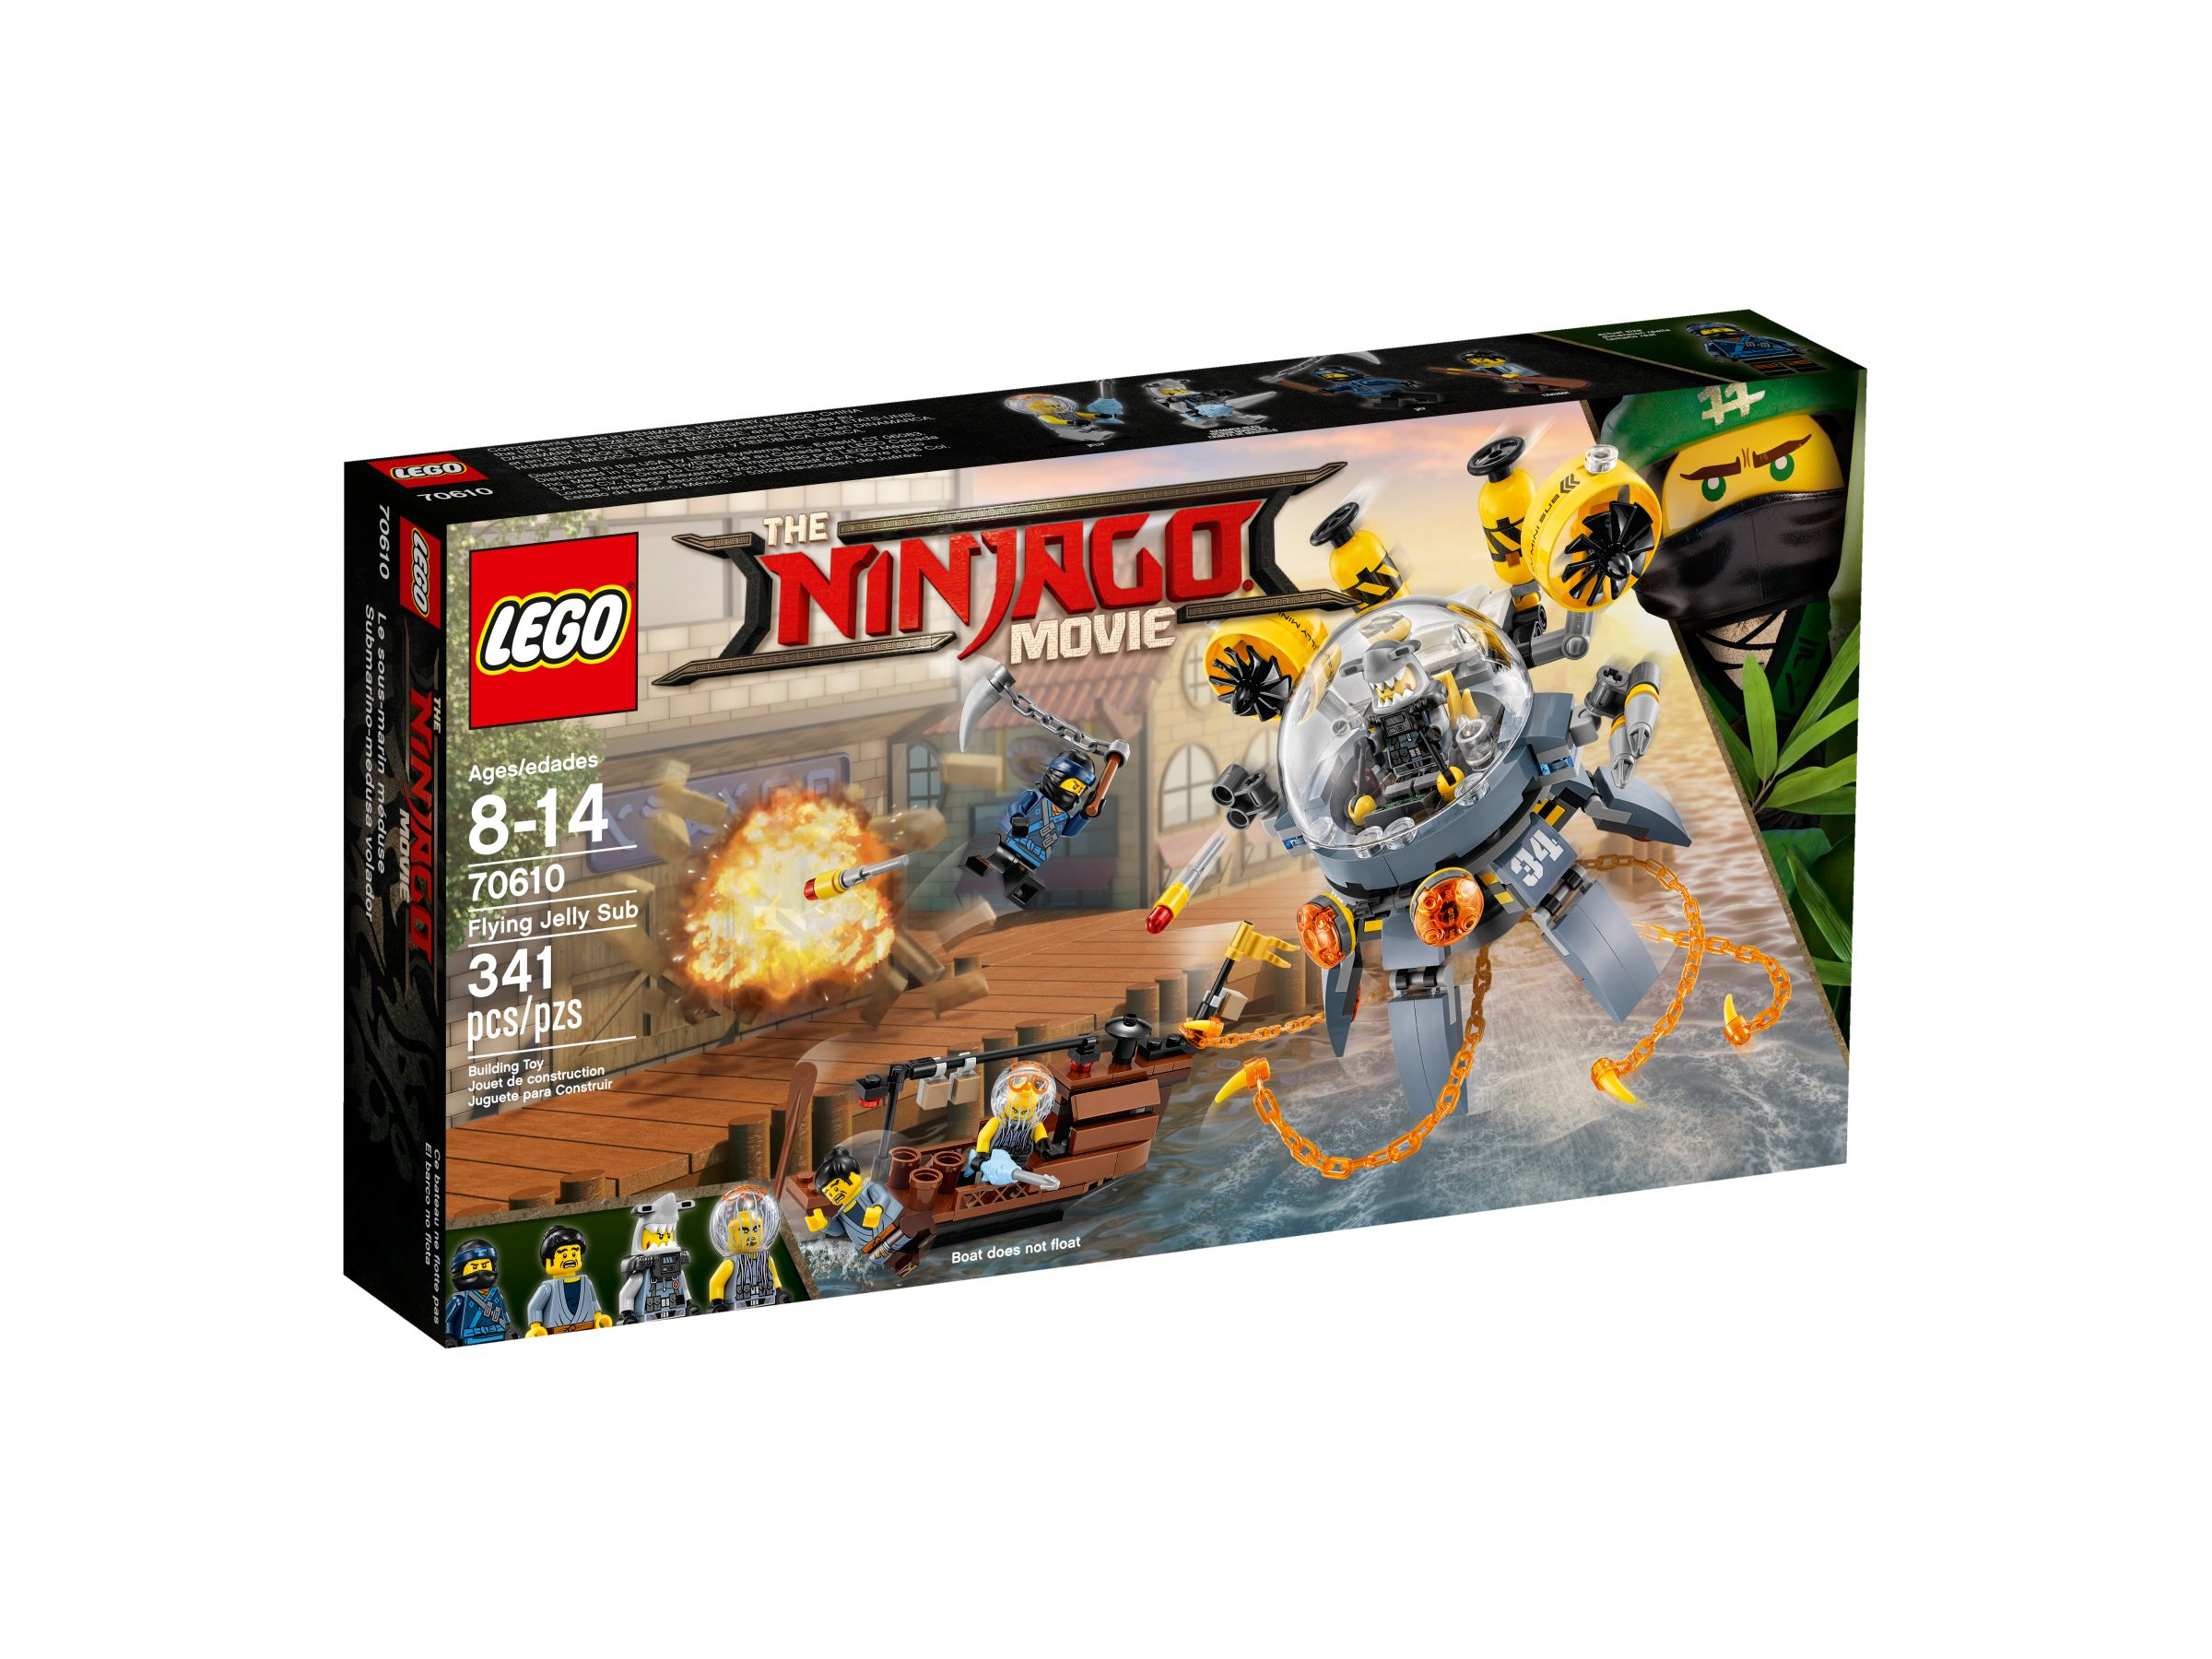 LEGO The LEGO Ninjago Movie 70610 Turbo Qualle LEGO_70610_alt1.jpg